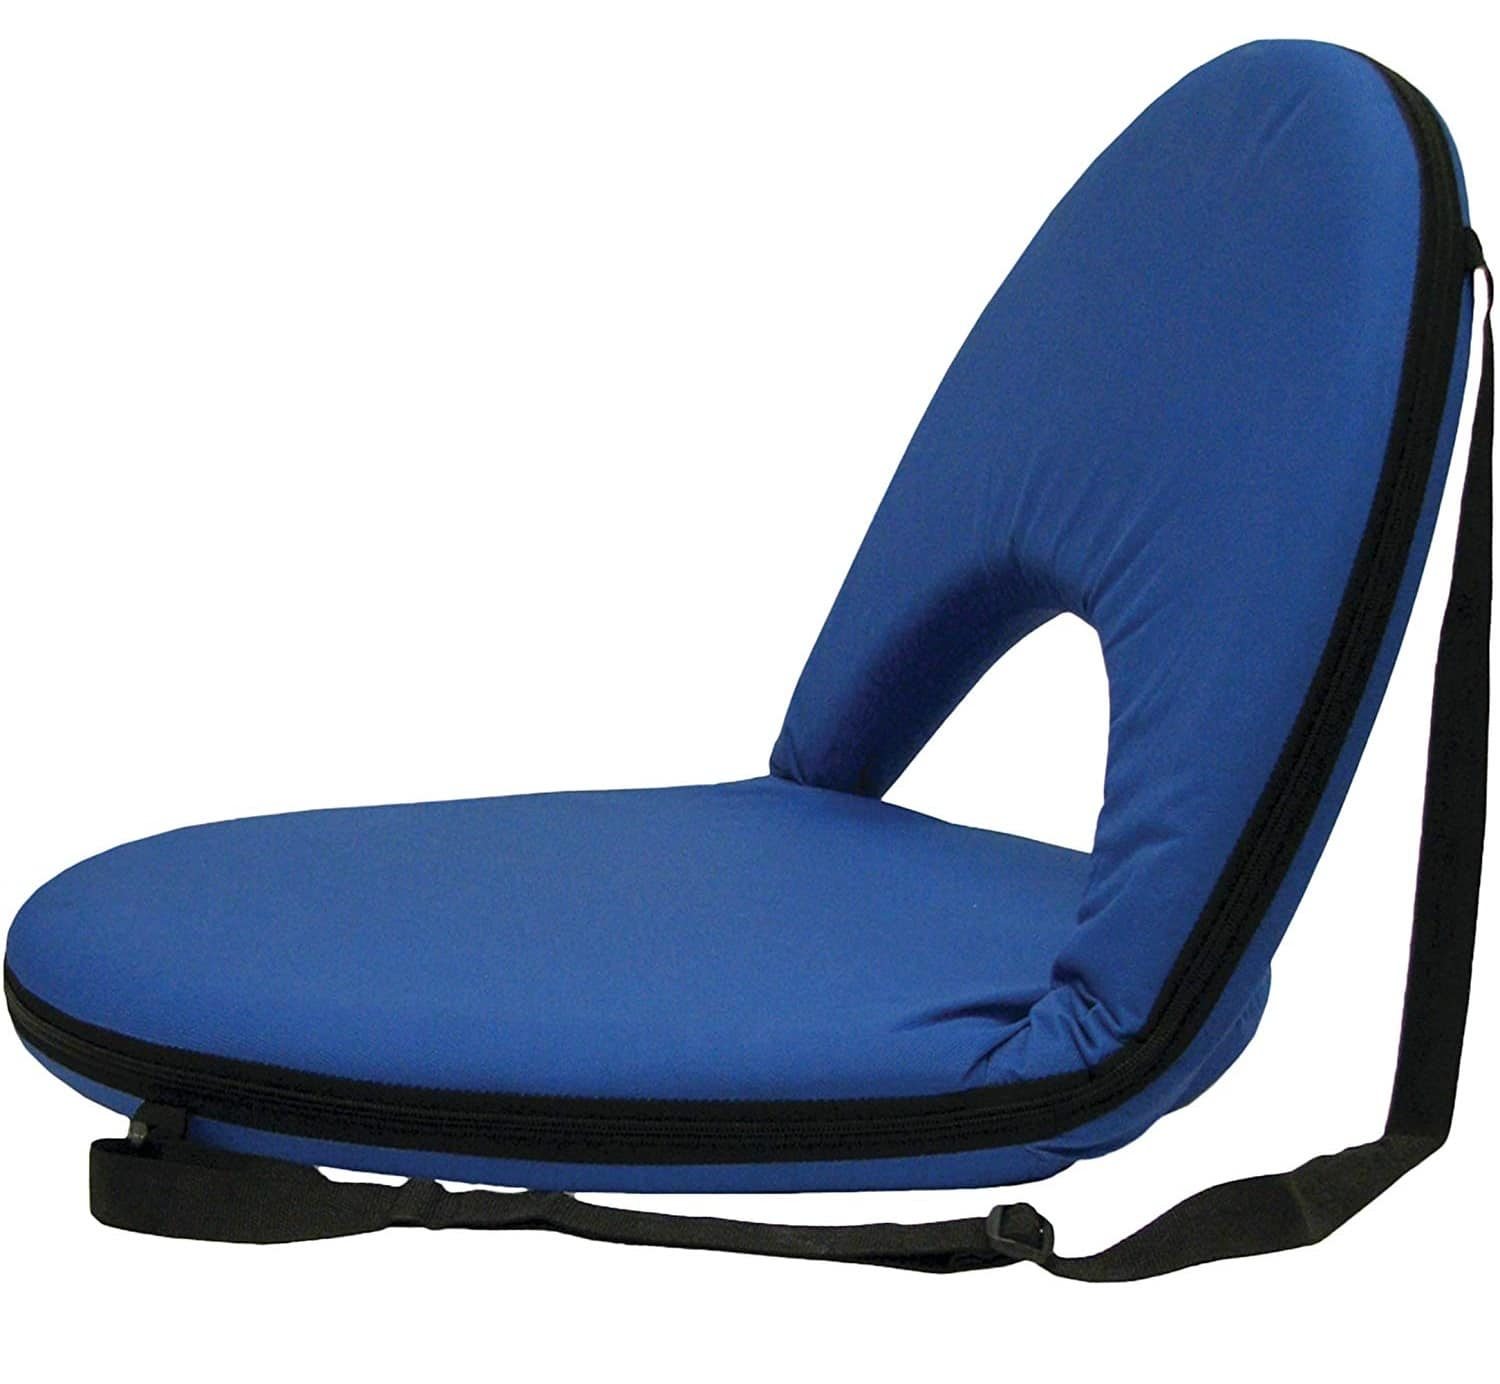 2.STANSPORT - Go Anywhere Multi-fold Comfy Padded Floor Chair With Back Support